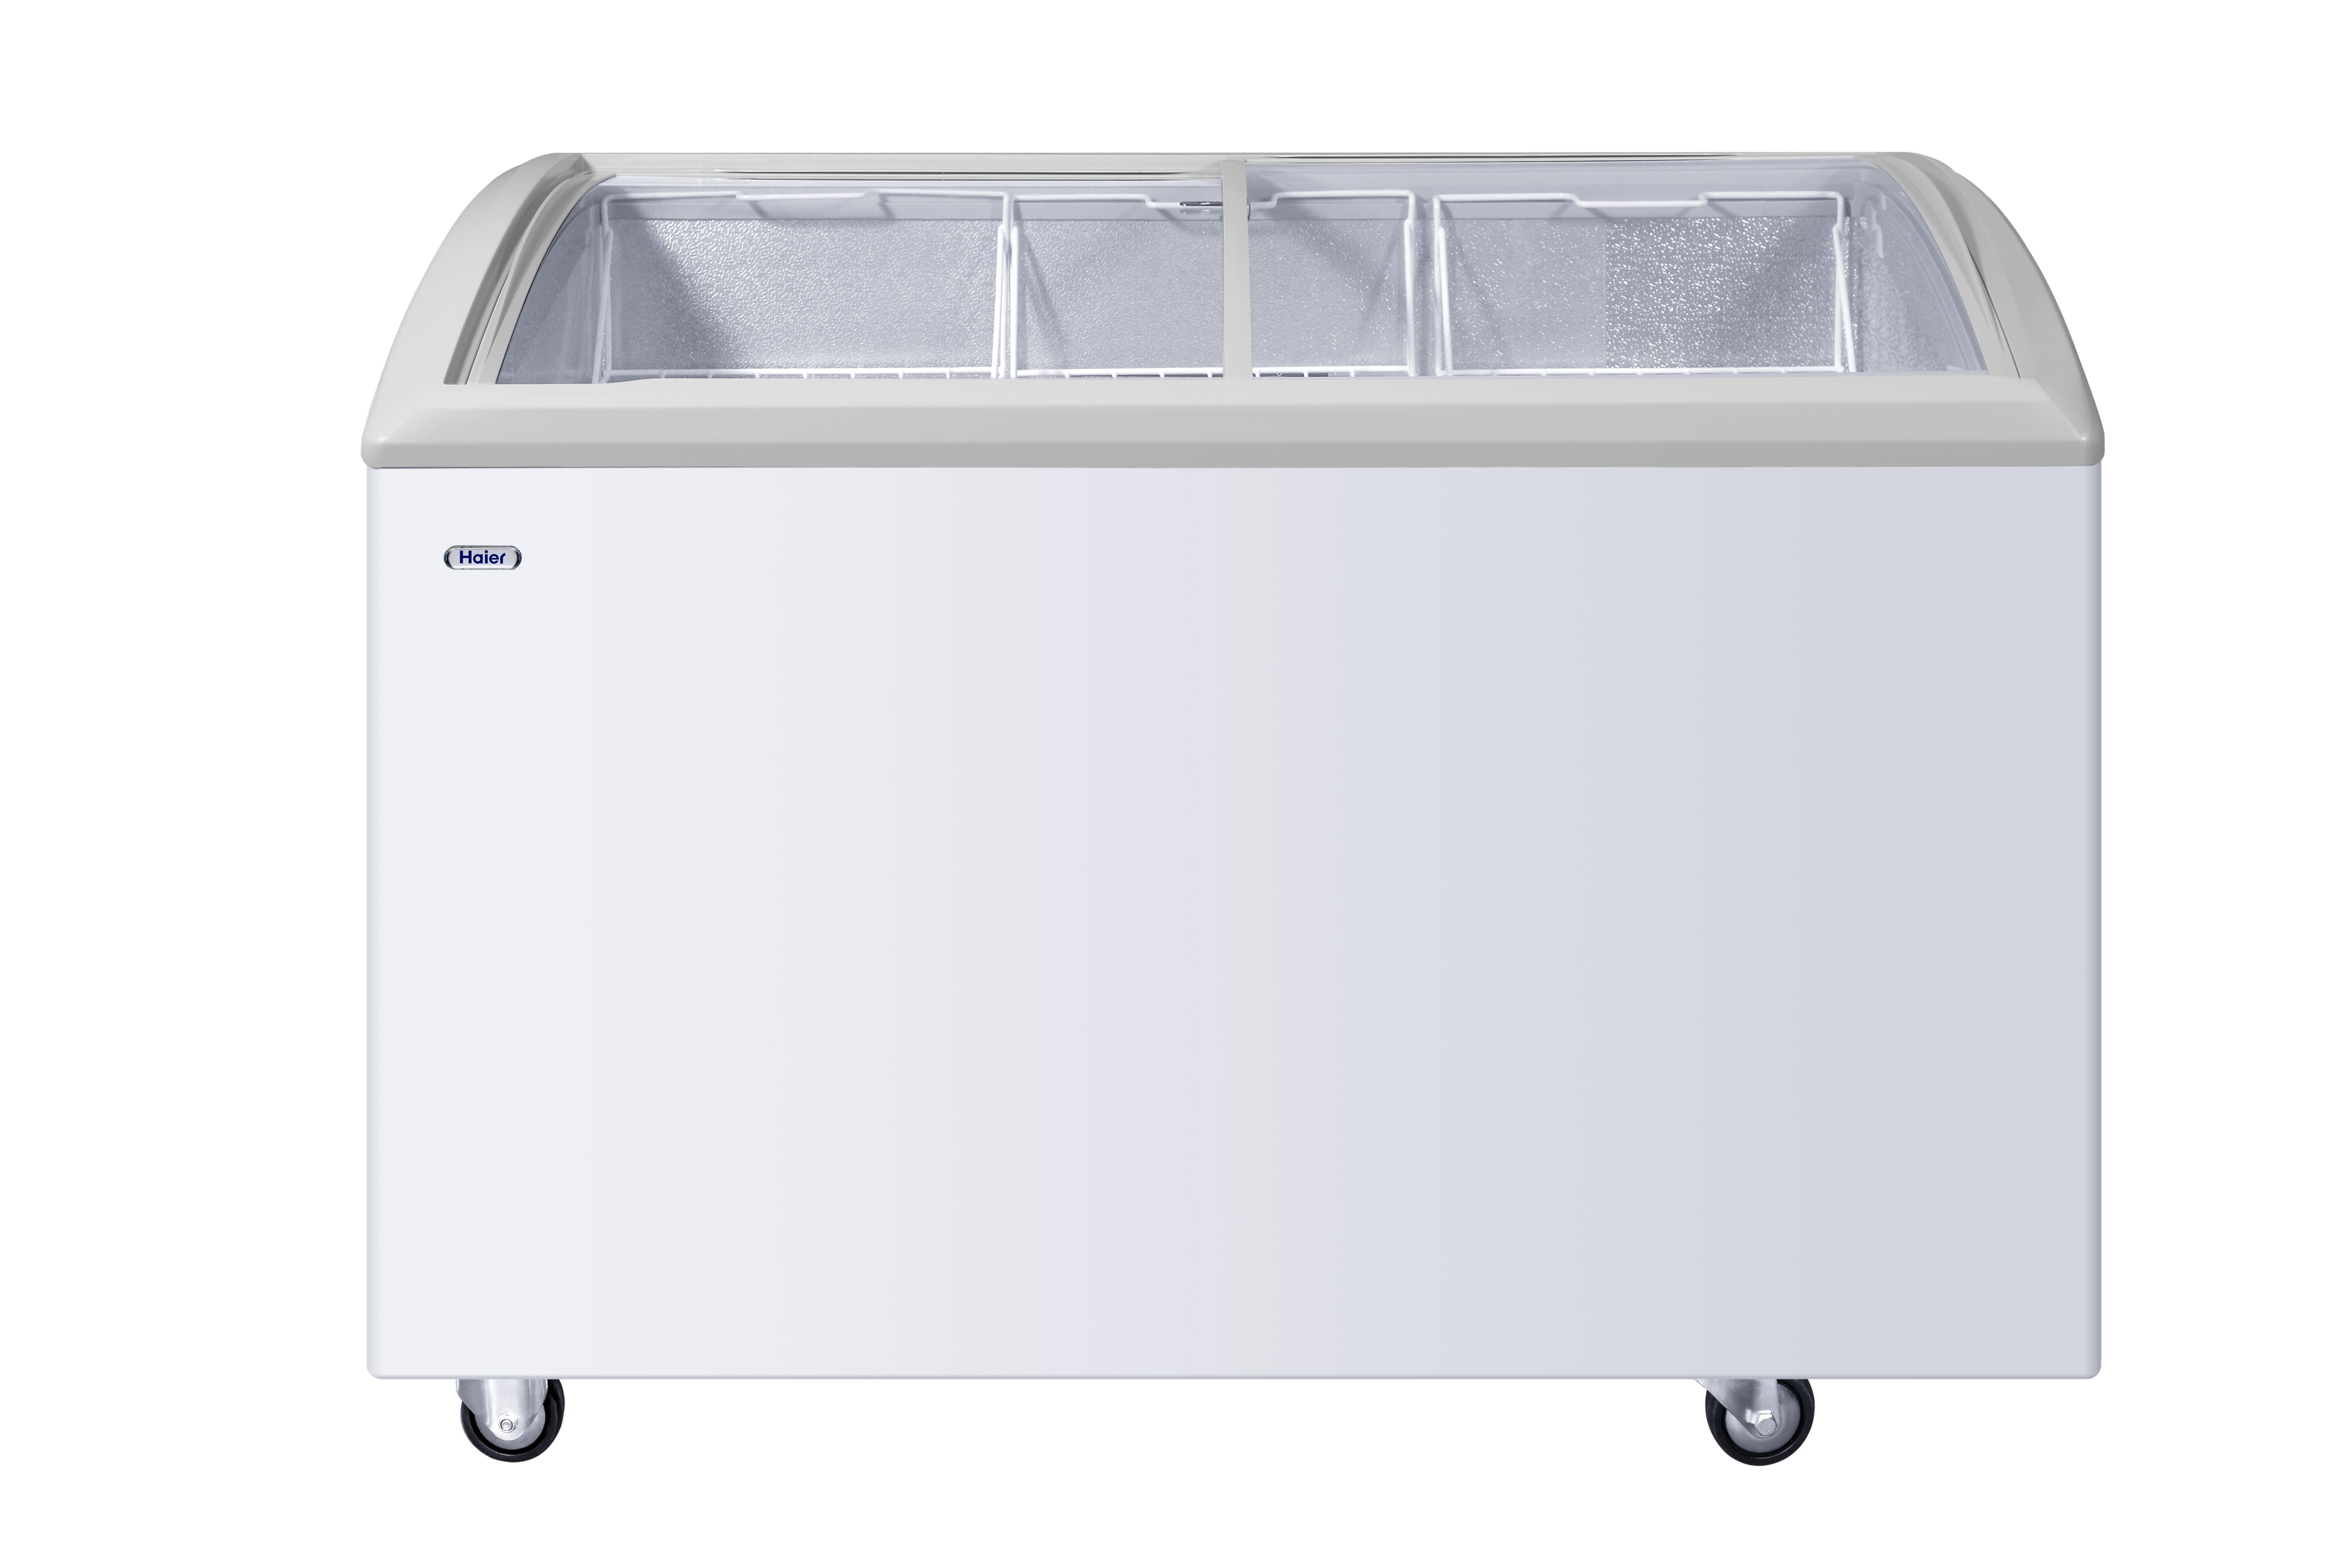 Haier 300 Ltrs Curved Glass Top Freezer, HCF-300GN